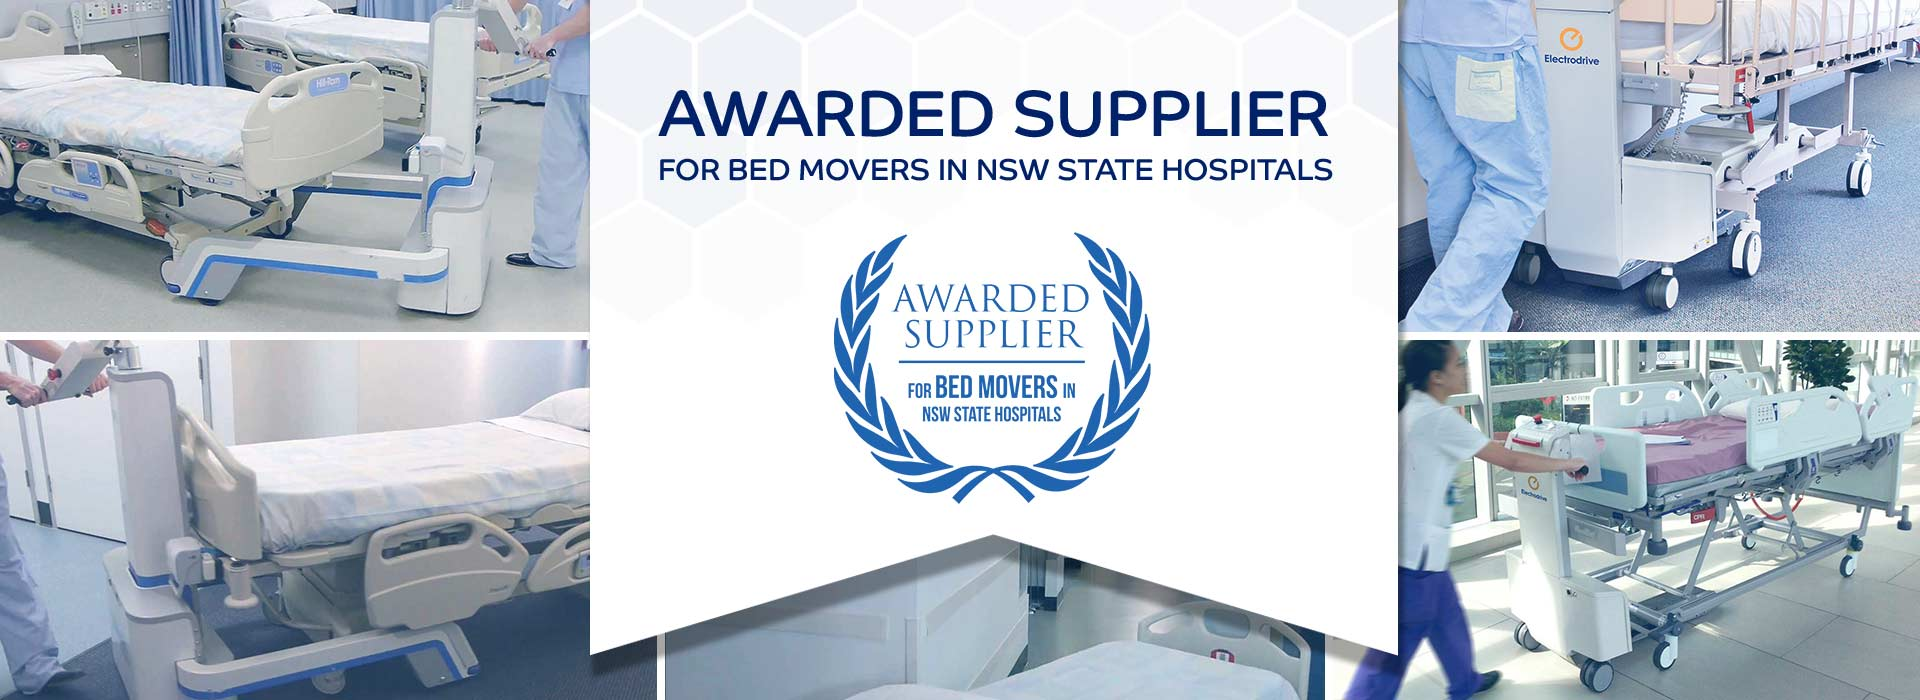 Awarded Supplier for NSW bed movers in NSW state institutions